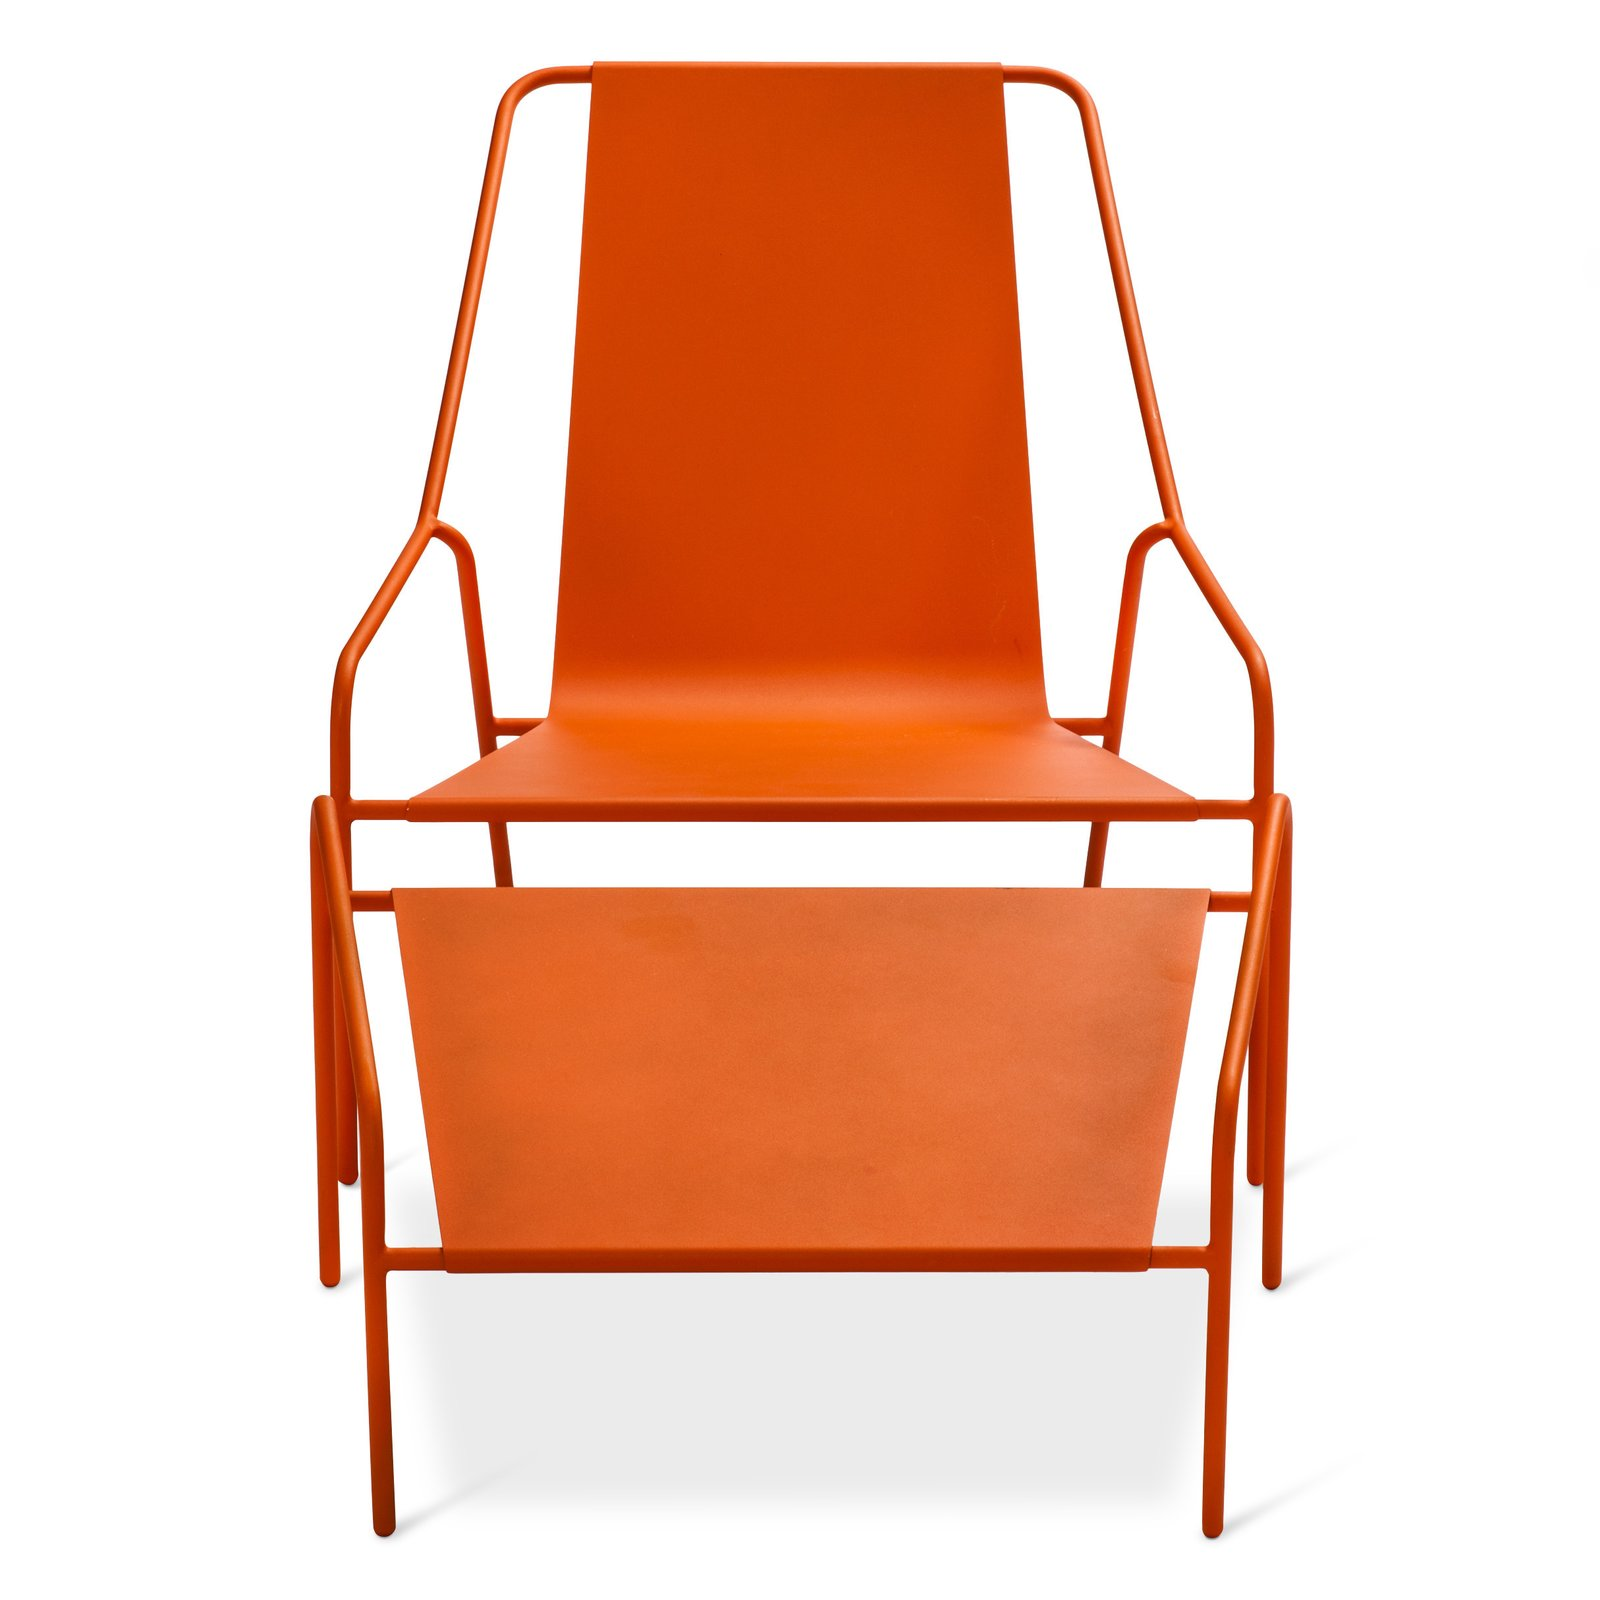 Posture Chair and Ottoman Set, $269.99, available in gray, orange, or white; designed by Chris Deam and Nick Dine for Modern by Dwell Magazine for Target  Modern by Dwell Magazine: Outdoor Collection - Photo 9 of 17